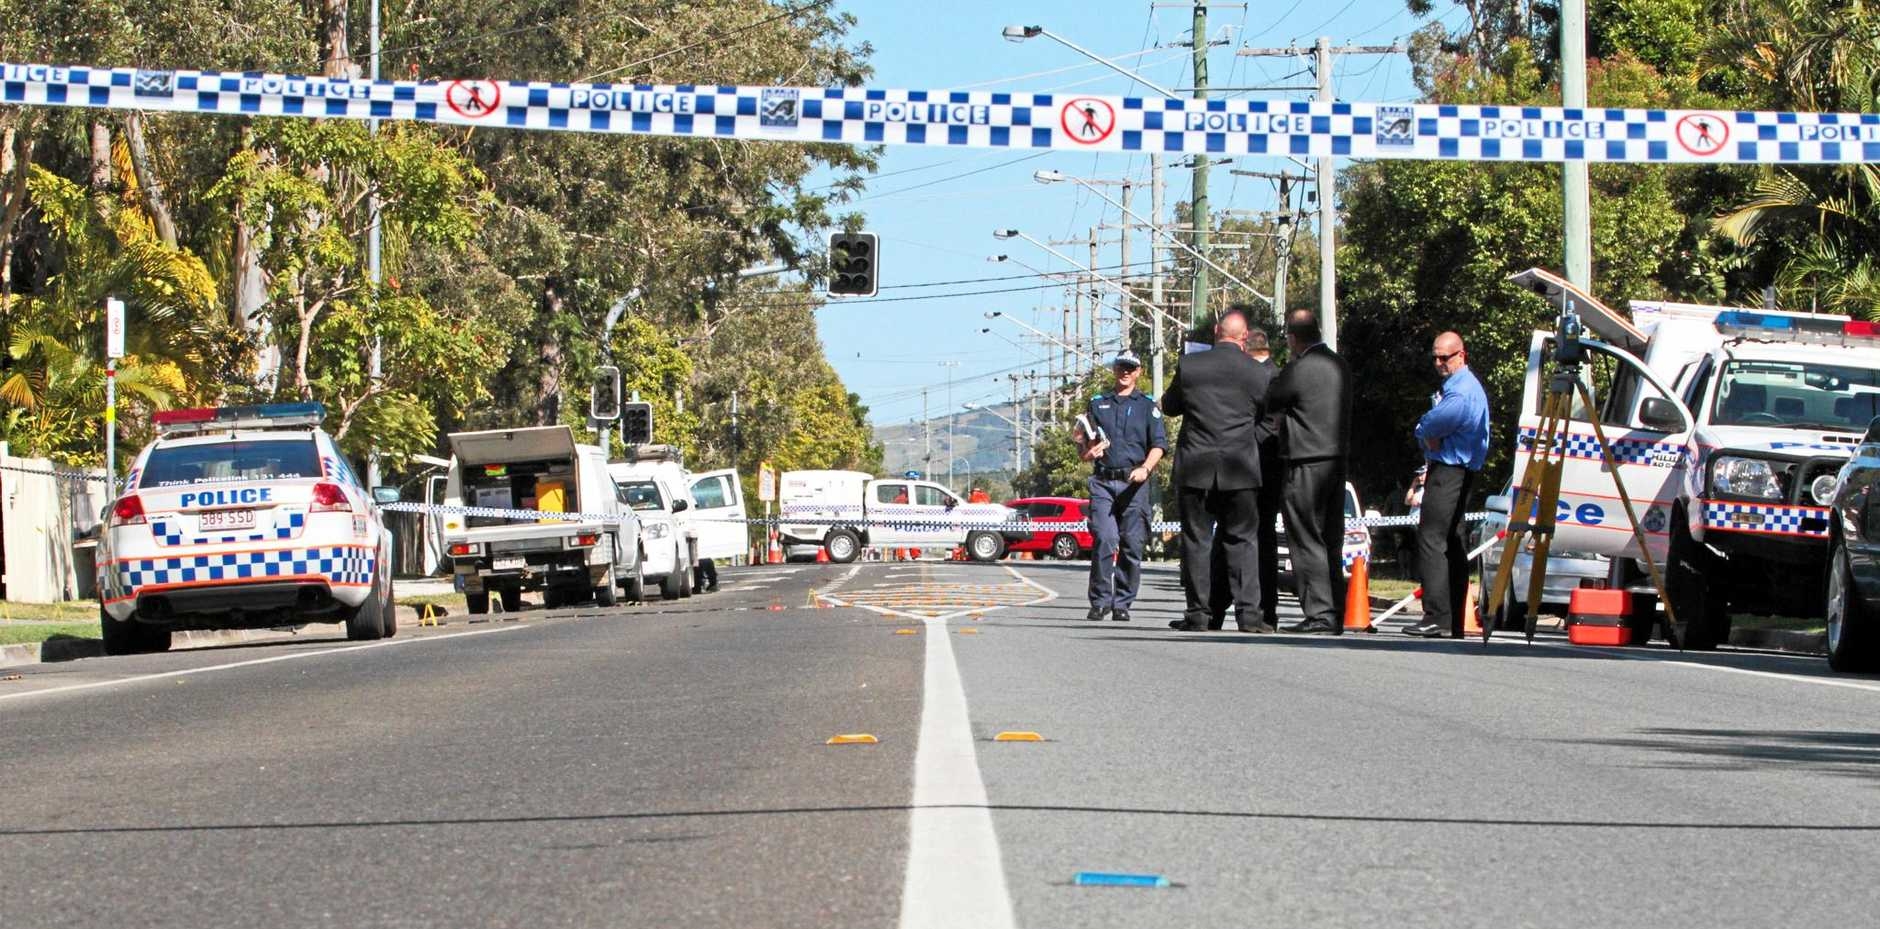 Police on the scene of a double homicide and police shooting on Yandina Coolum Road, Coolum Beach.